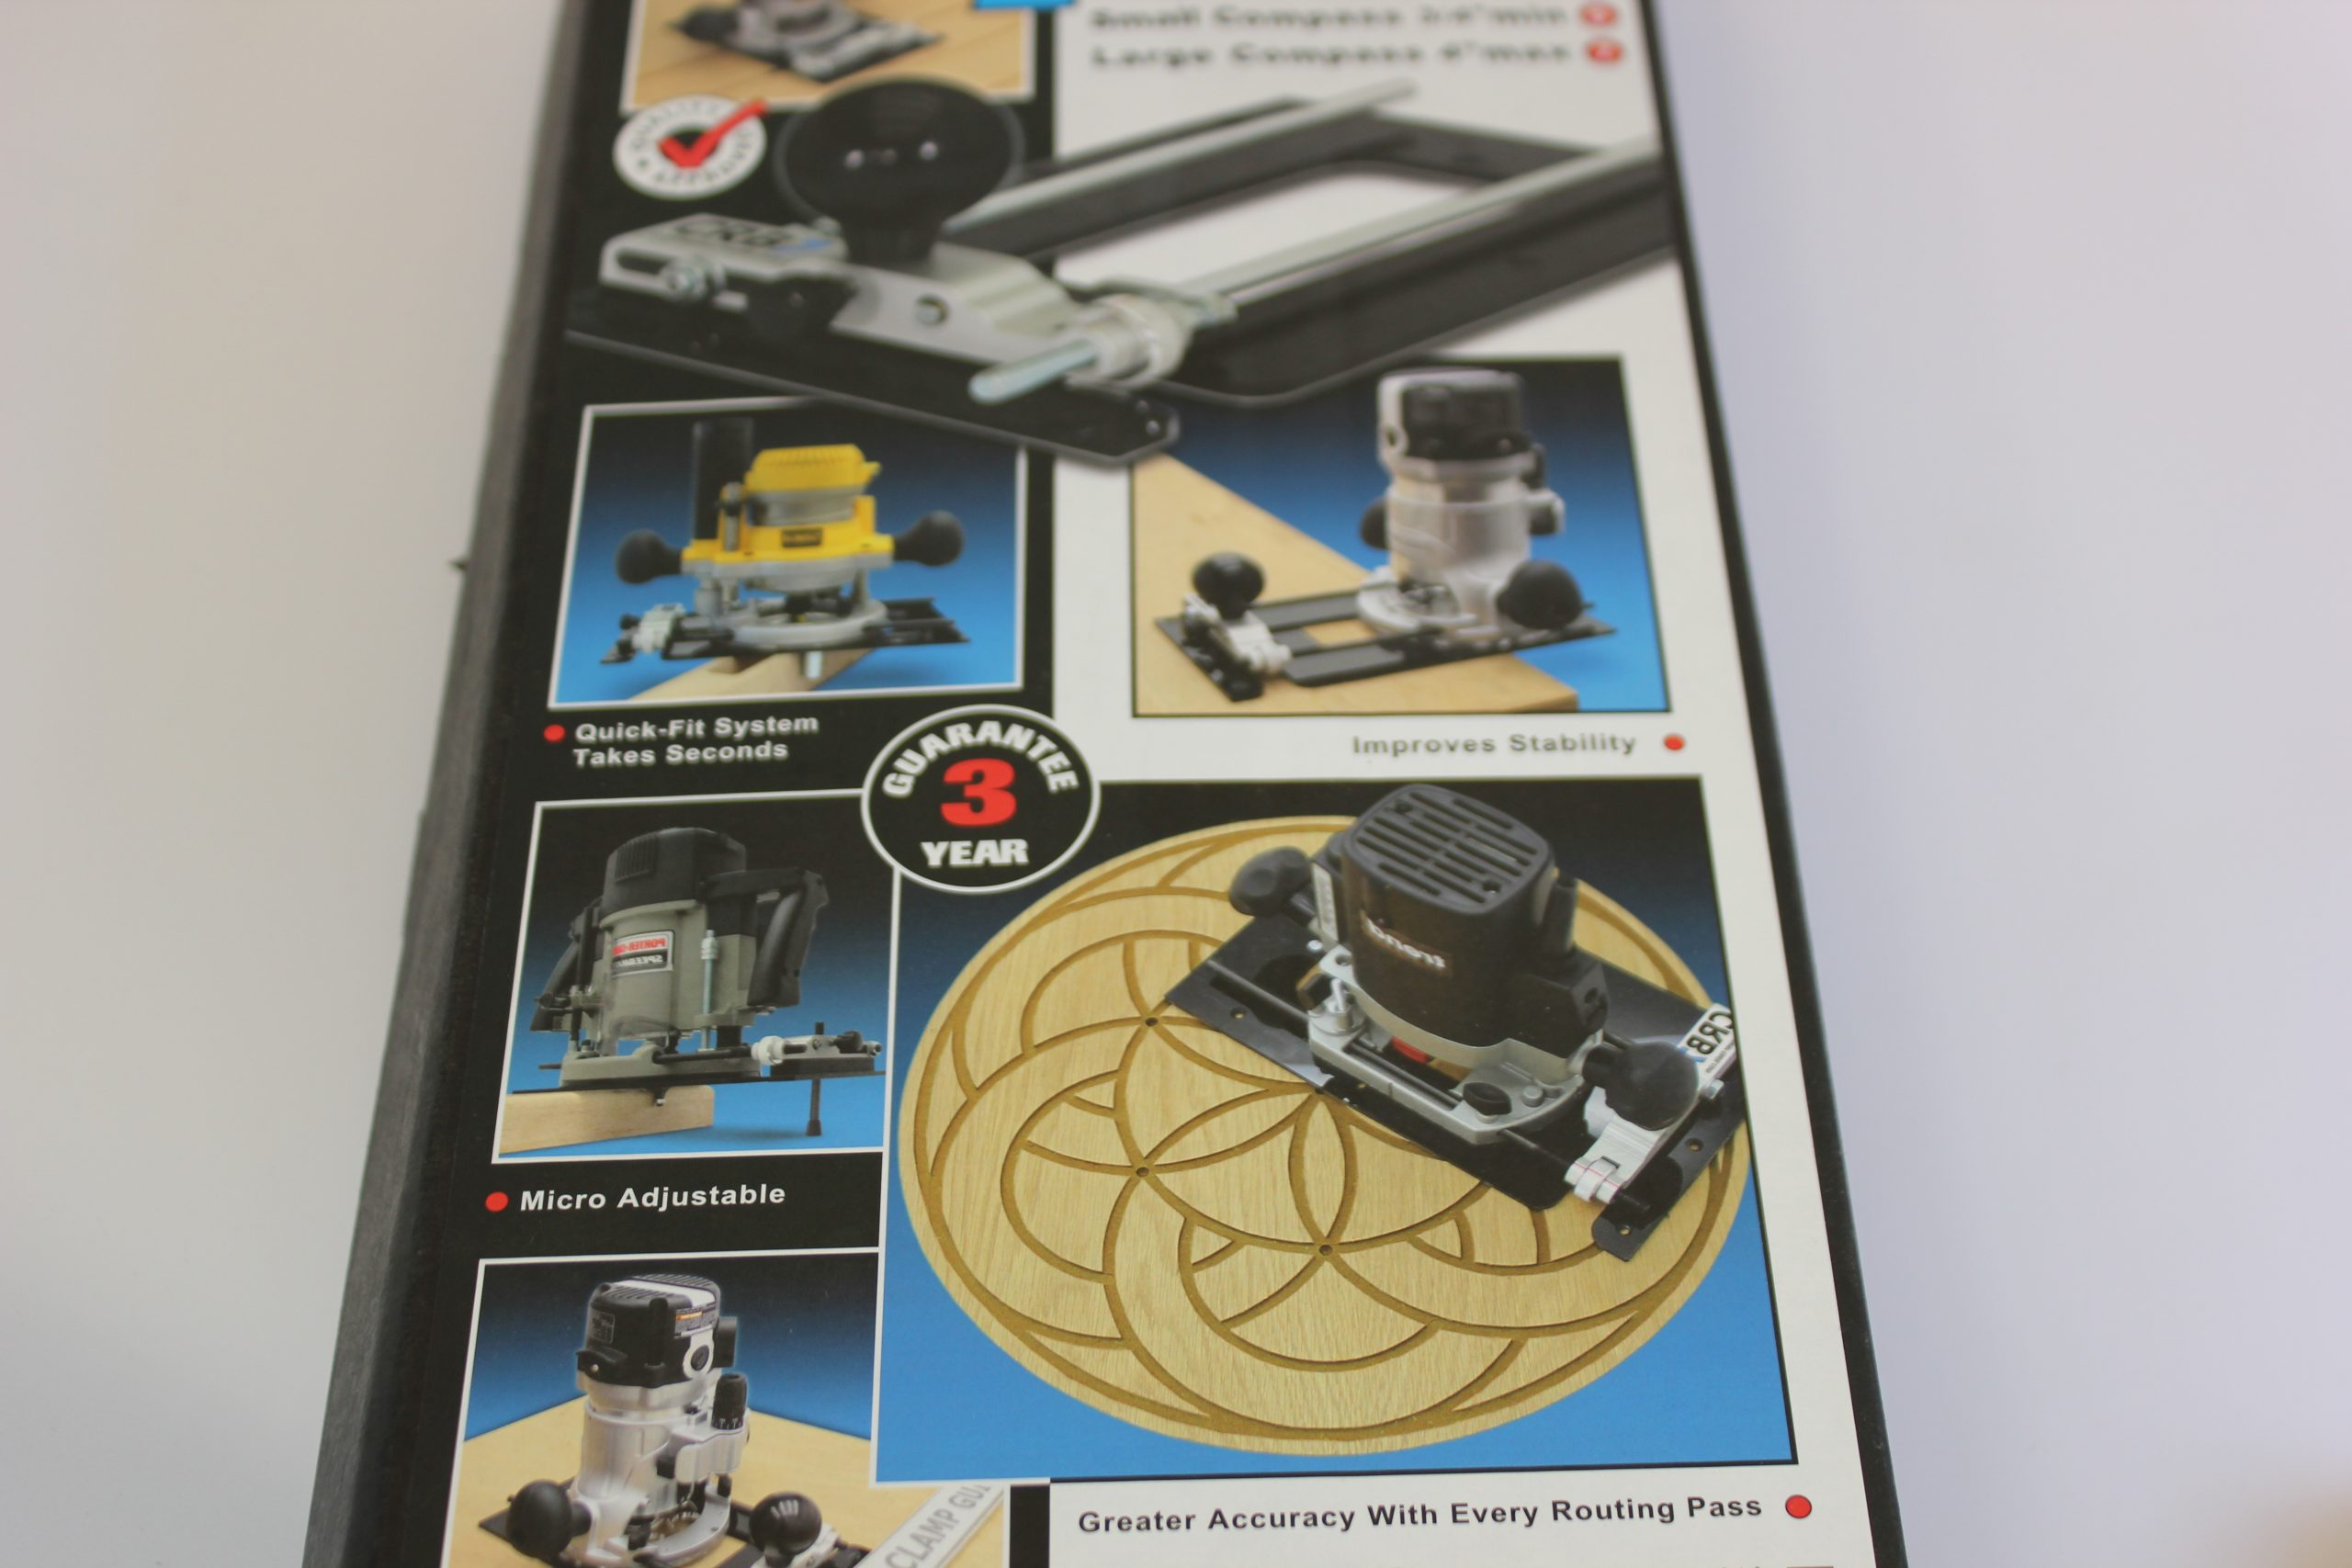 clamp-guide-product-kit-in-packaging